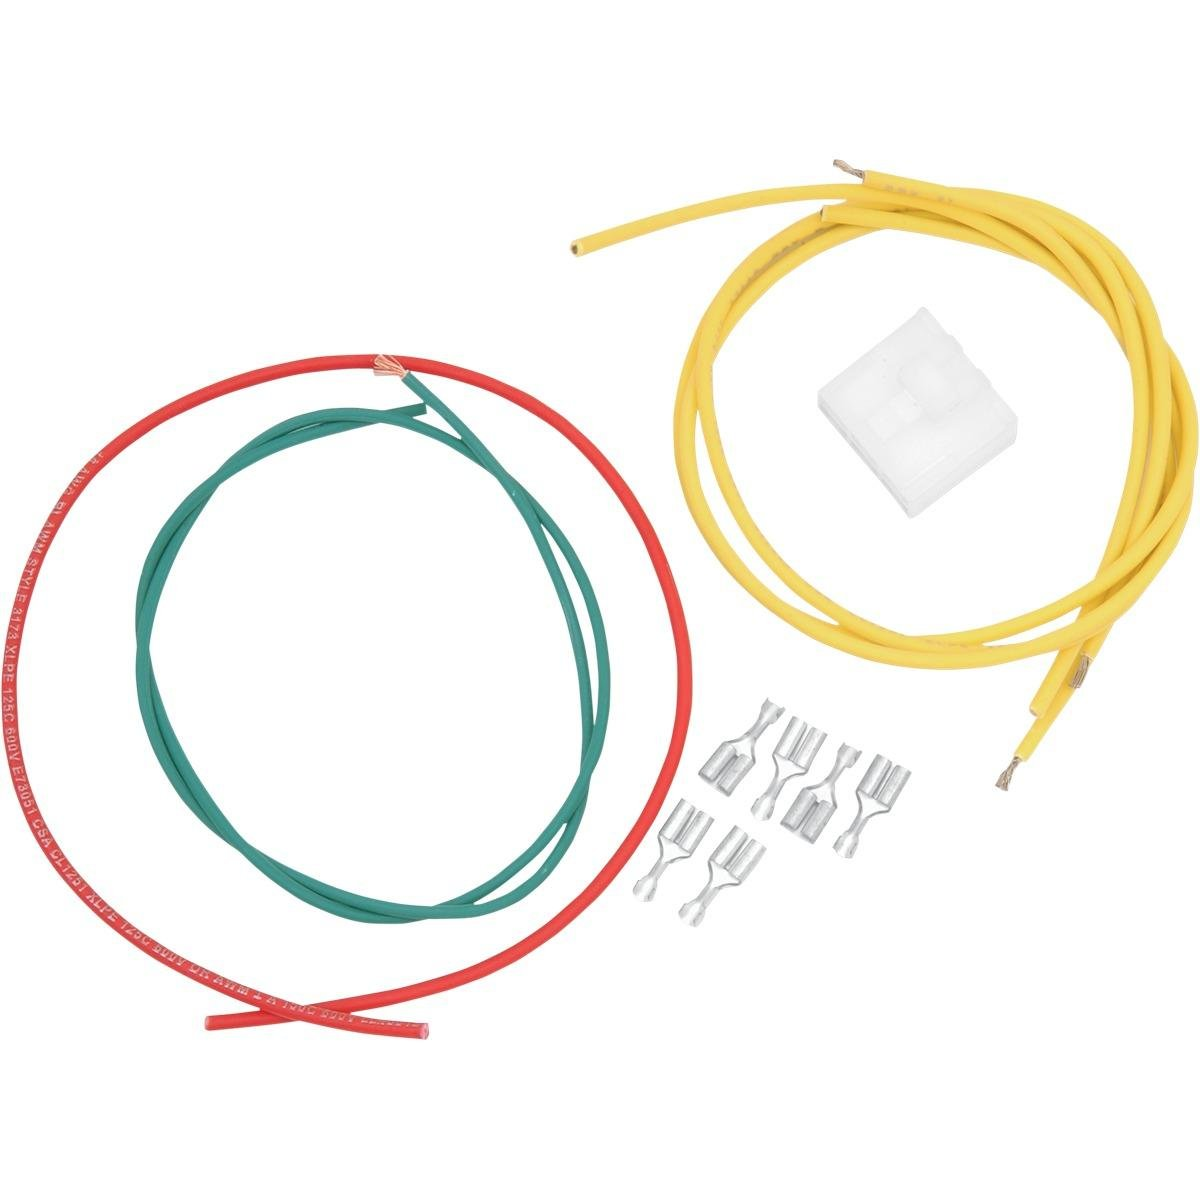 Ricks Motorsport Electric Rectifier Regulator Wiring R6s Diagram Harness Connector Kit 11 103 Automotive